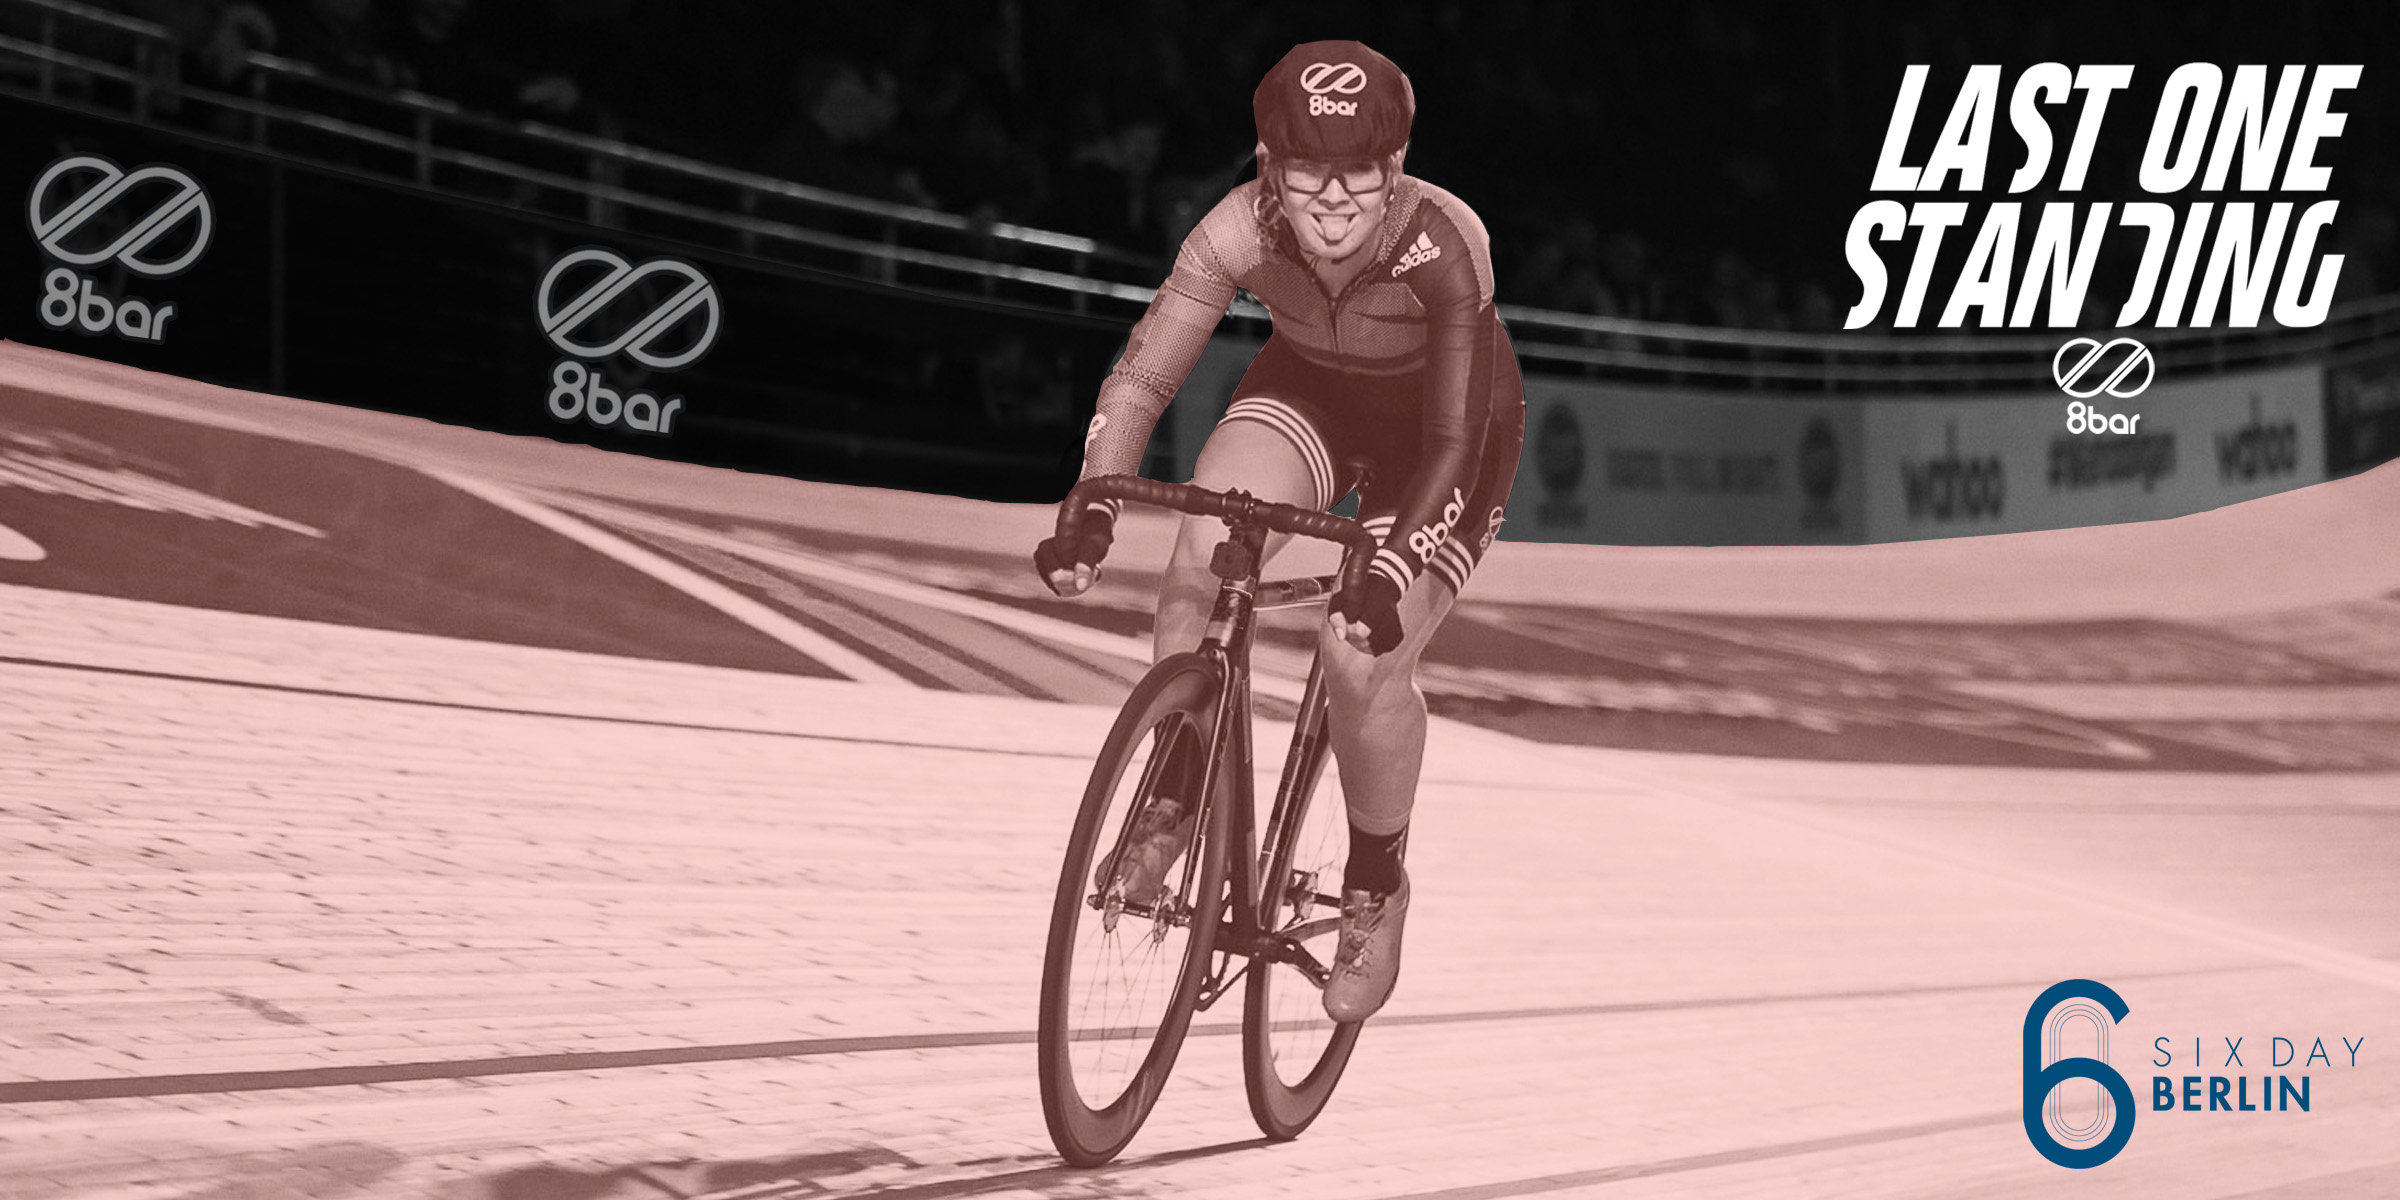 8bar six day berlin los 2019 banner - SIGN UP NOW: 8bar LAST ONE STANDING 2019